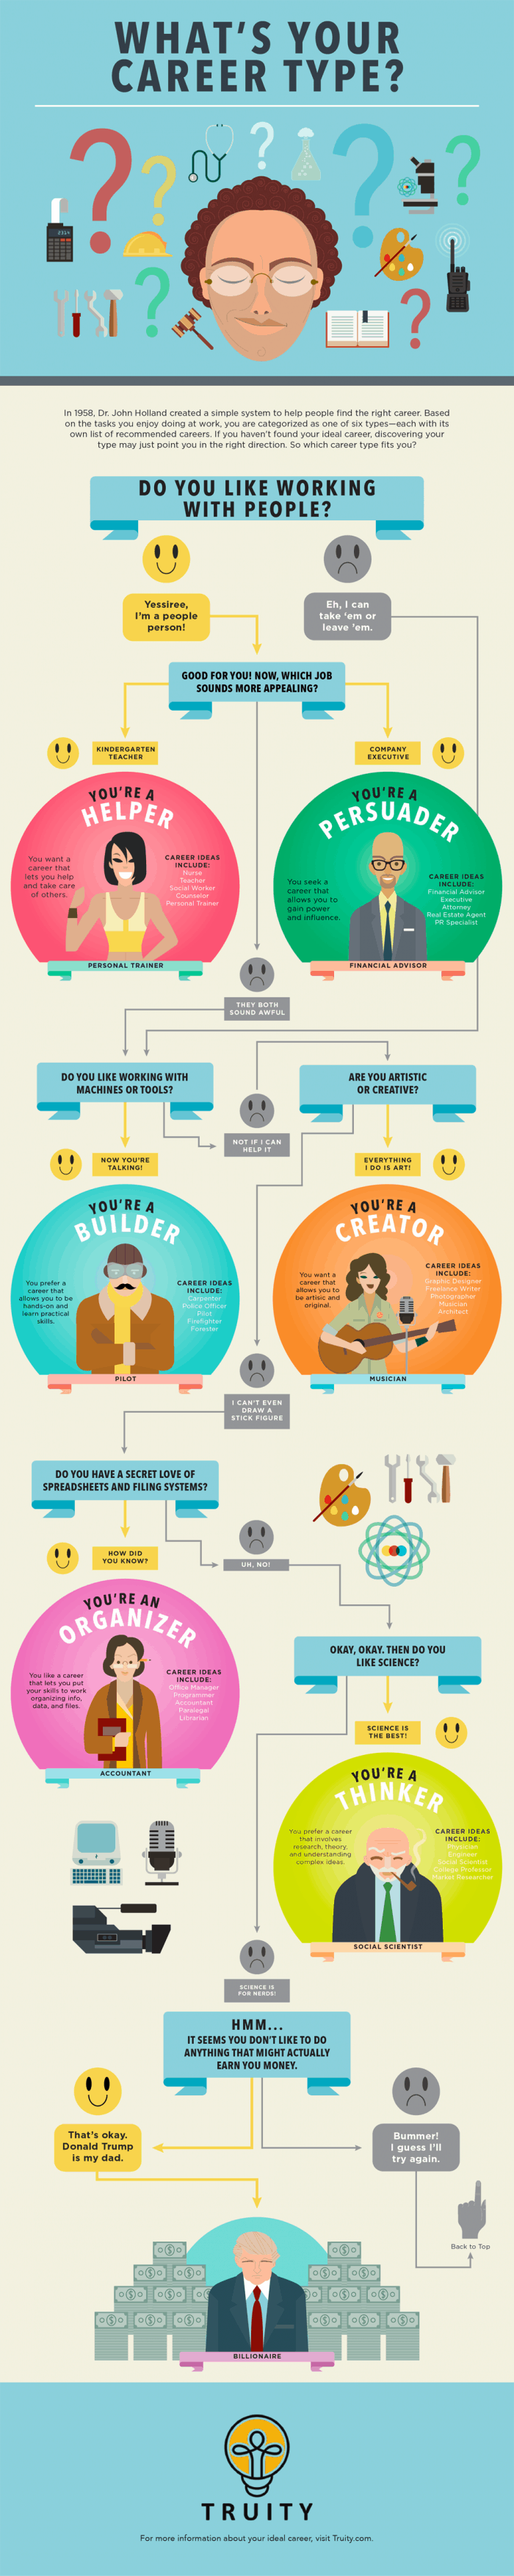 What's Your Career Type Infographic